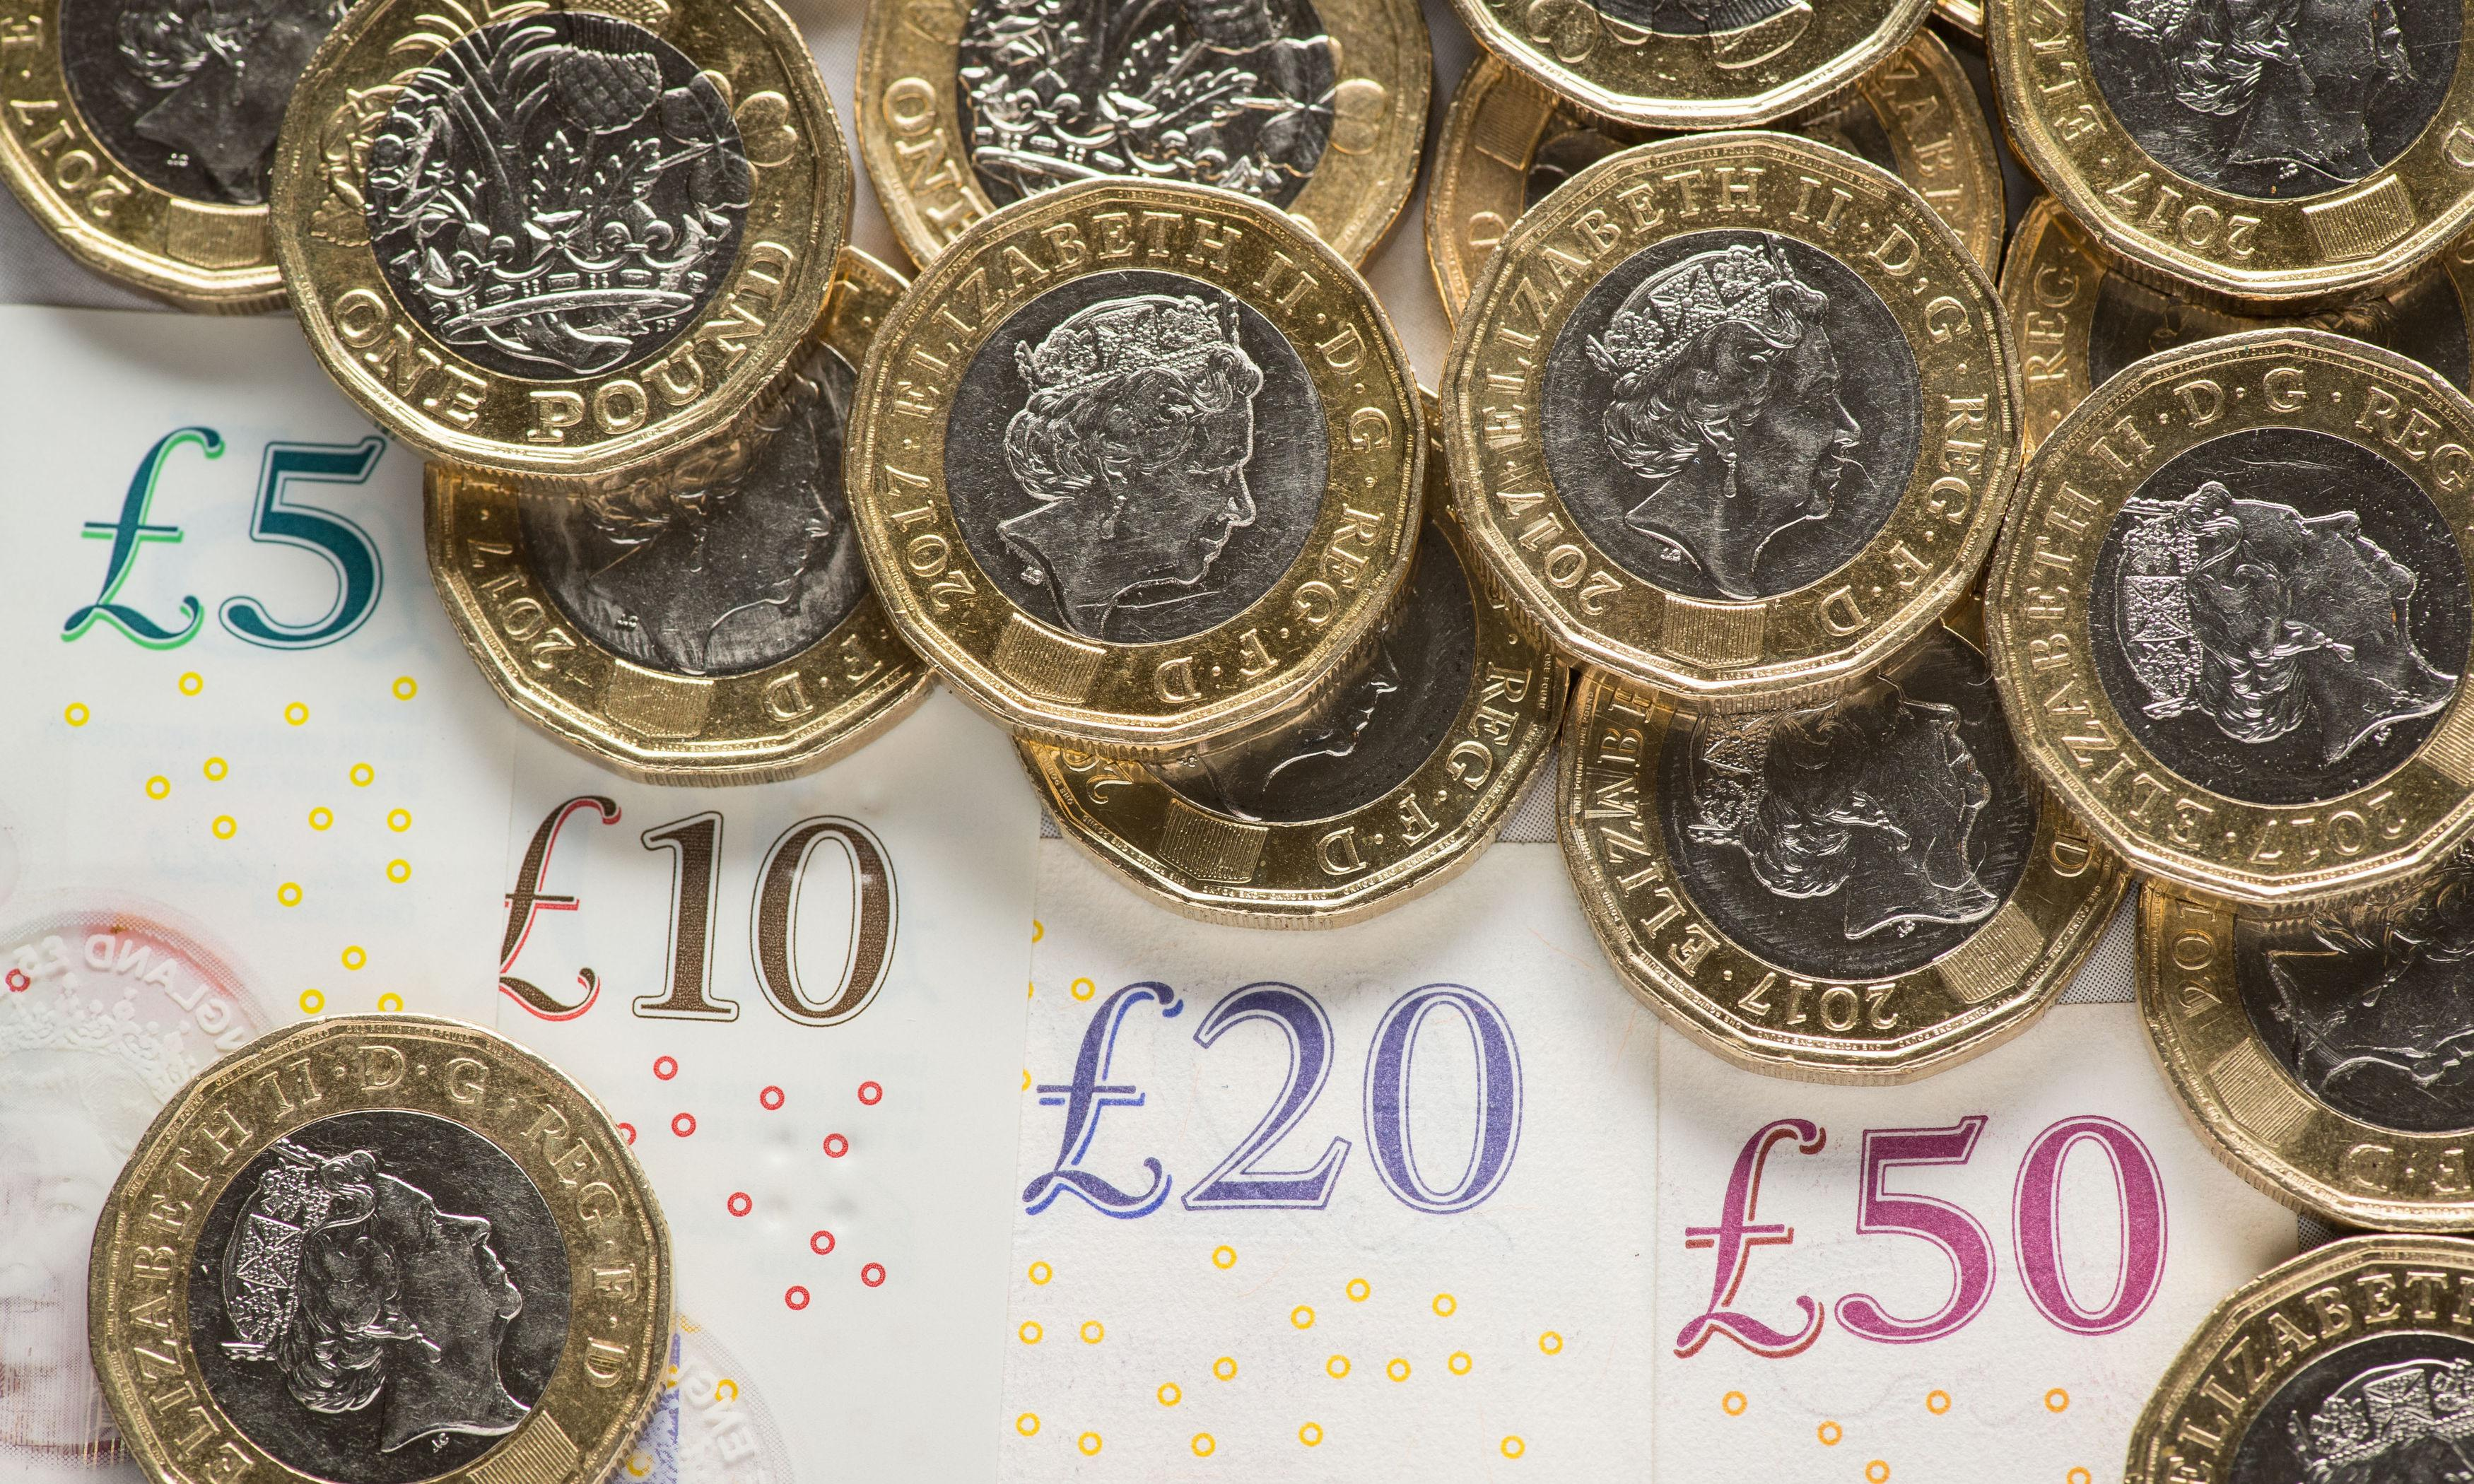 The lost £19bn: how to trace those forgotten pension pots